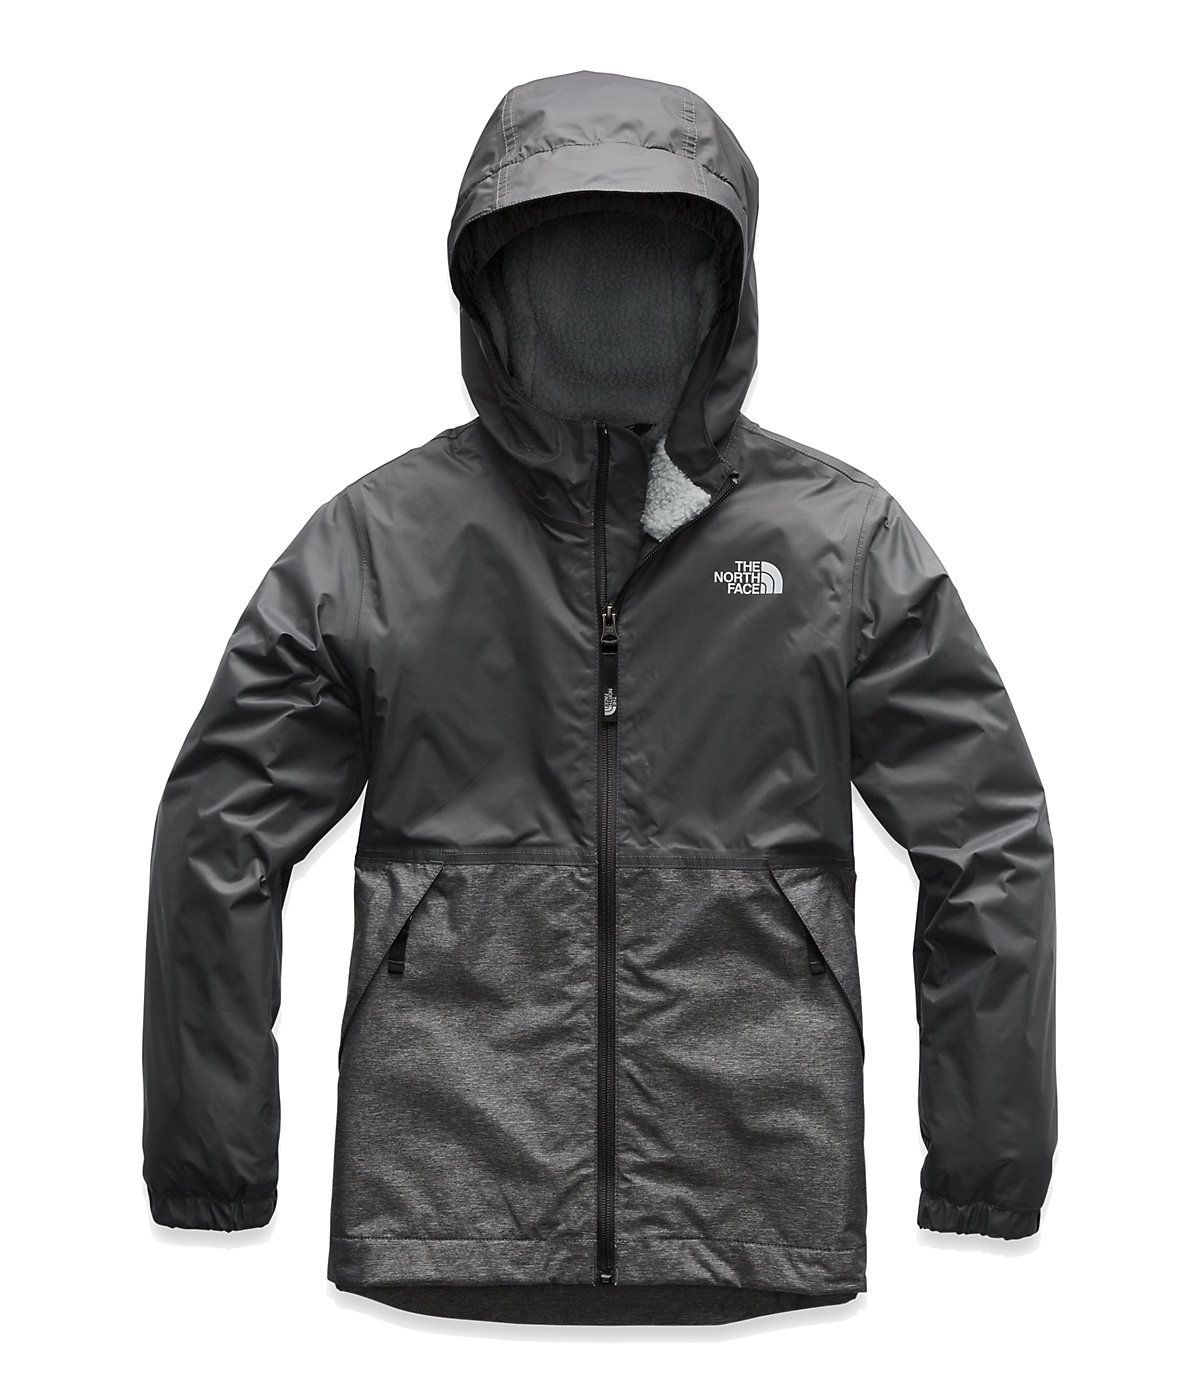 best prices factory outlet check out Boys' warm storm jacket | Products in 2019 | North face rain ...